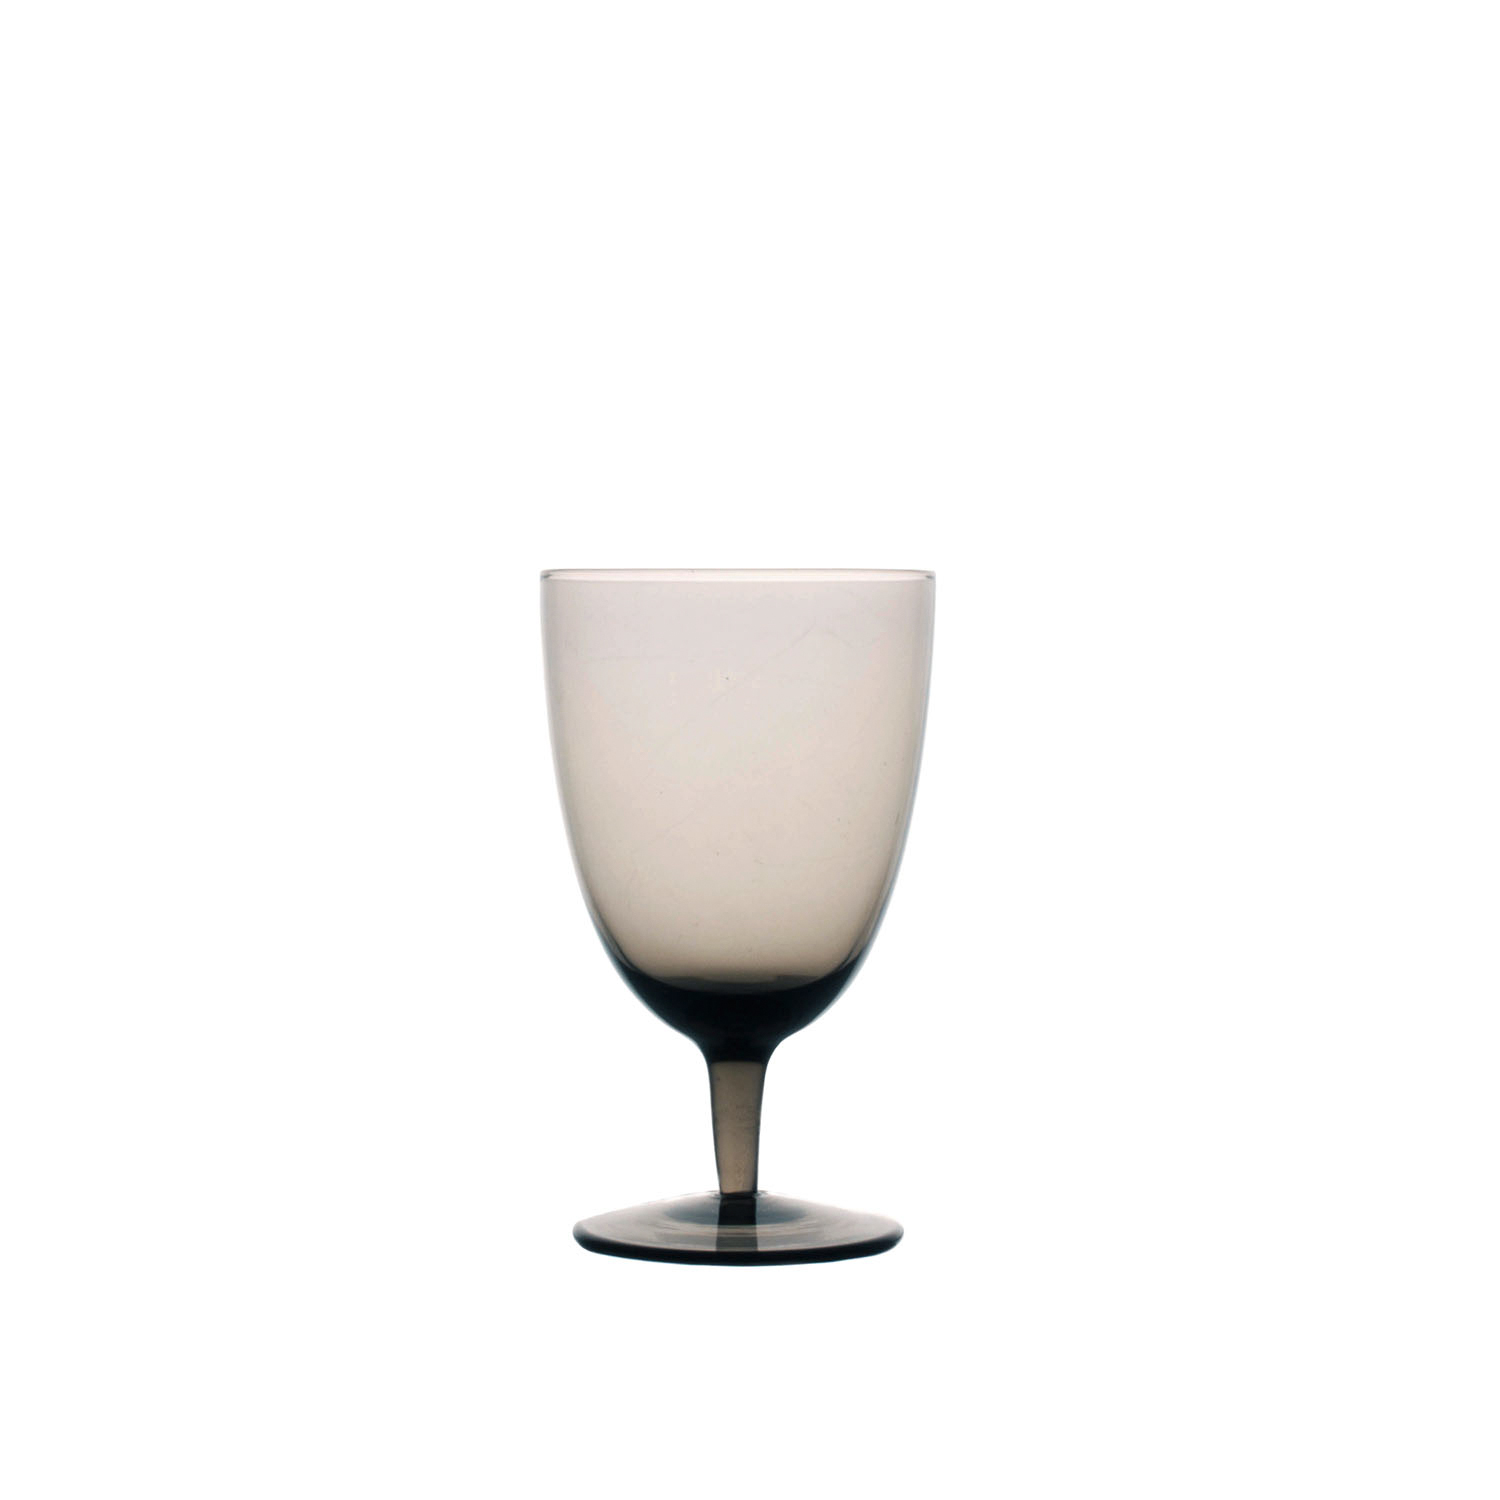 Elevated Glassware